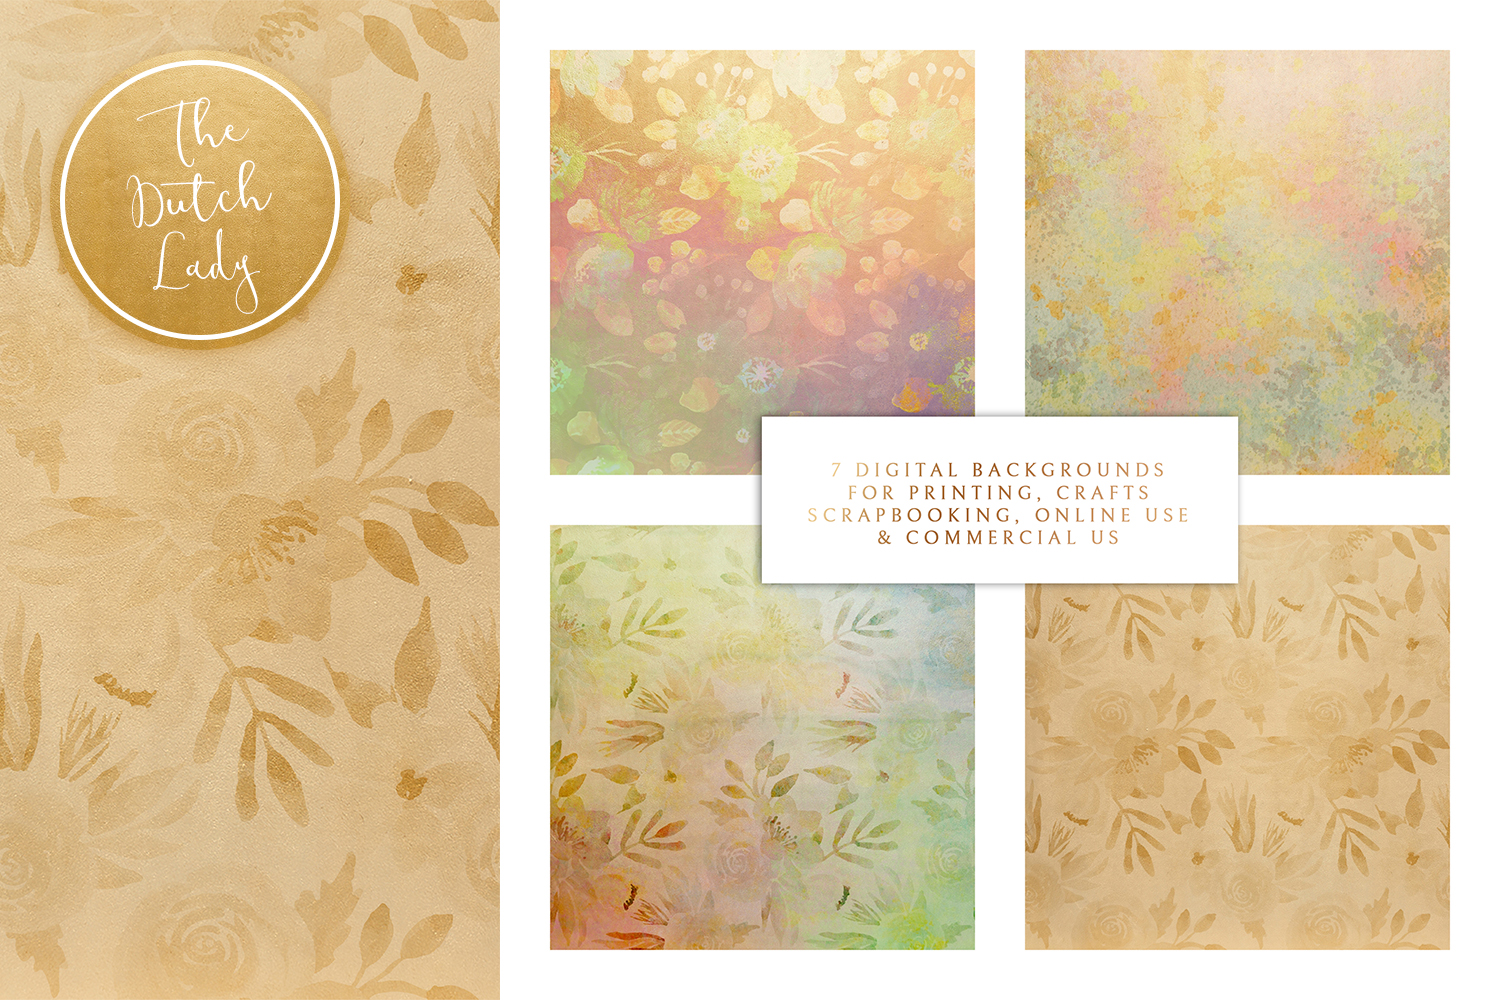 Floral Backgrounds & Paper Designs - Michelle example image 2